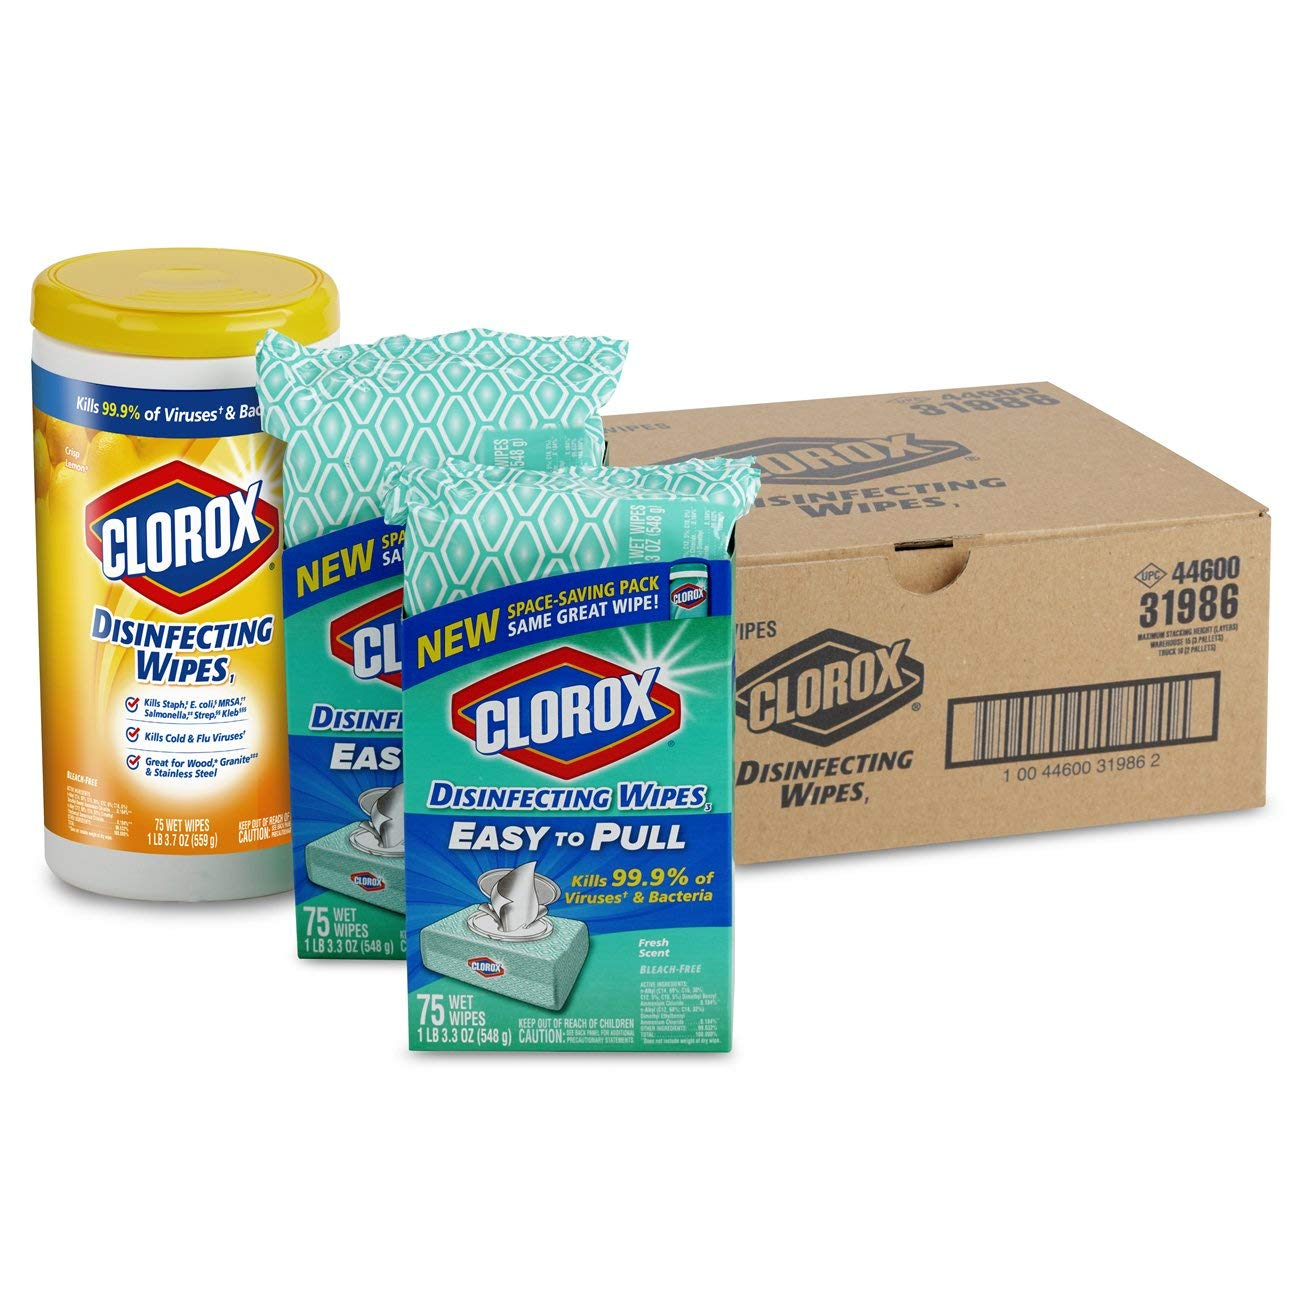 75 Count Each Clorox Disinfecting Wipes Value Pack Bleach Free Cleaning Wipes Pack of 3